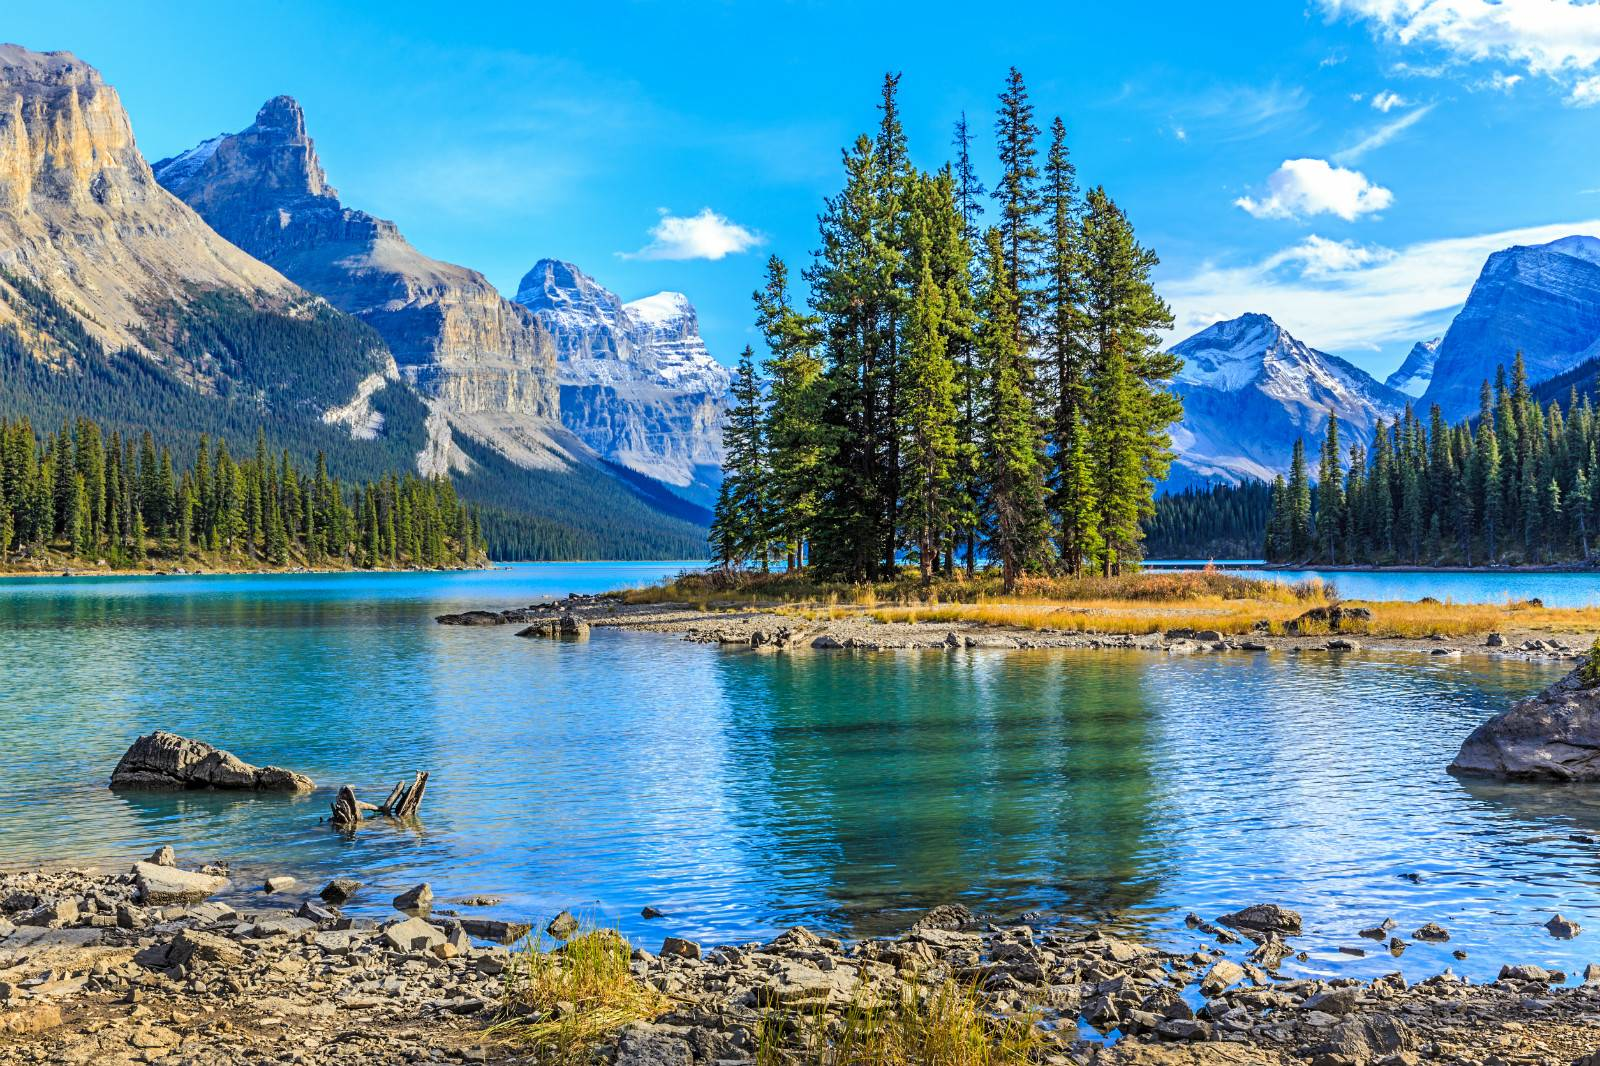 5-Day Calgary to Jasper, Maligne Lake, Lake Louise & National Park, Columbia Icefield, Vancouver